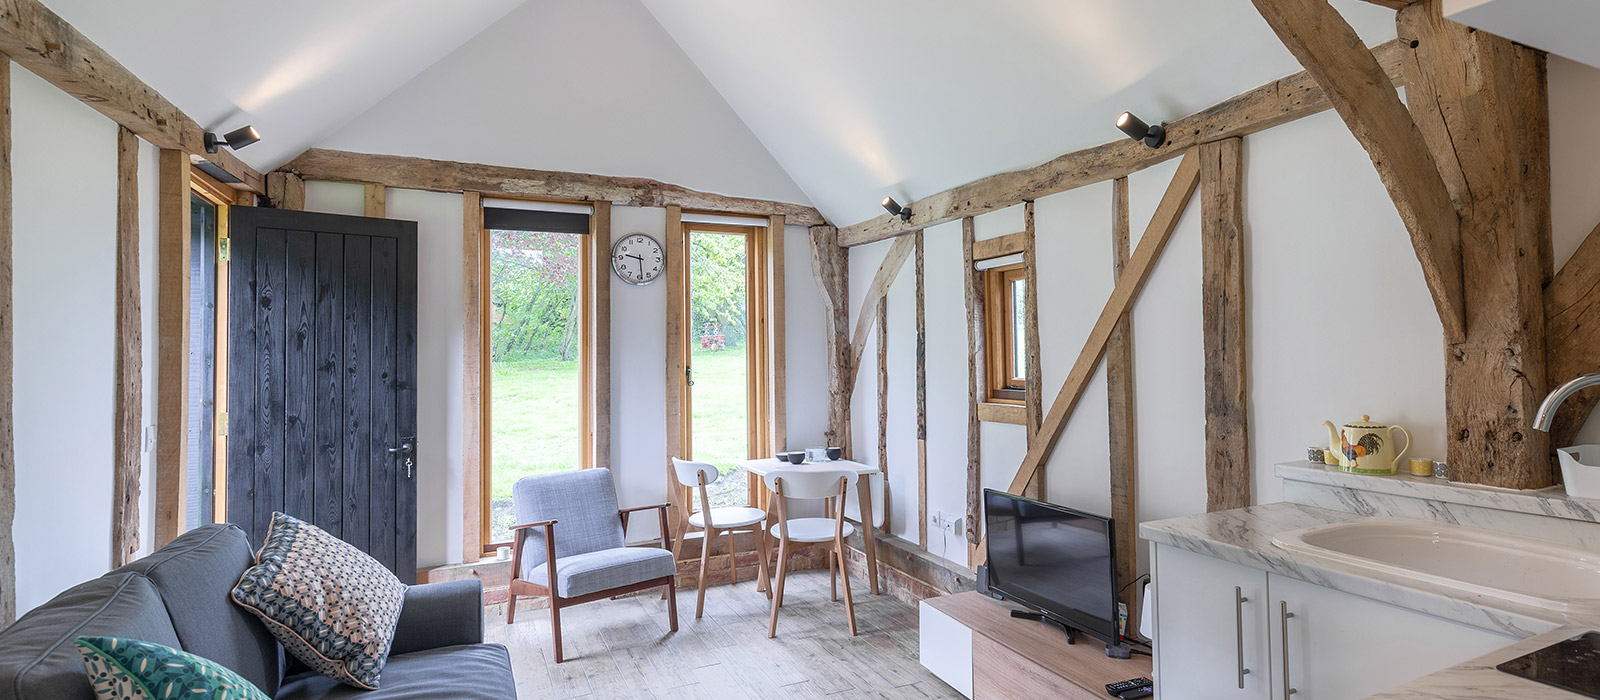 gyd-architecture | restored oak frame